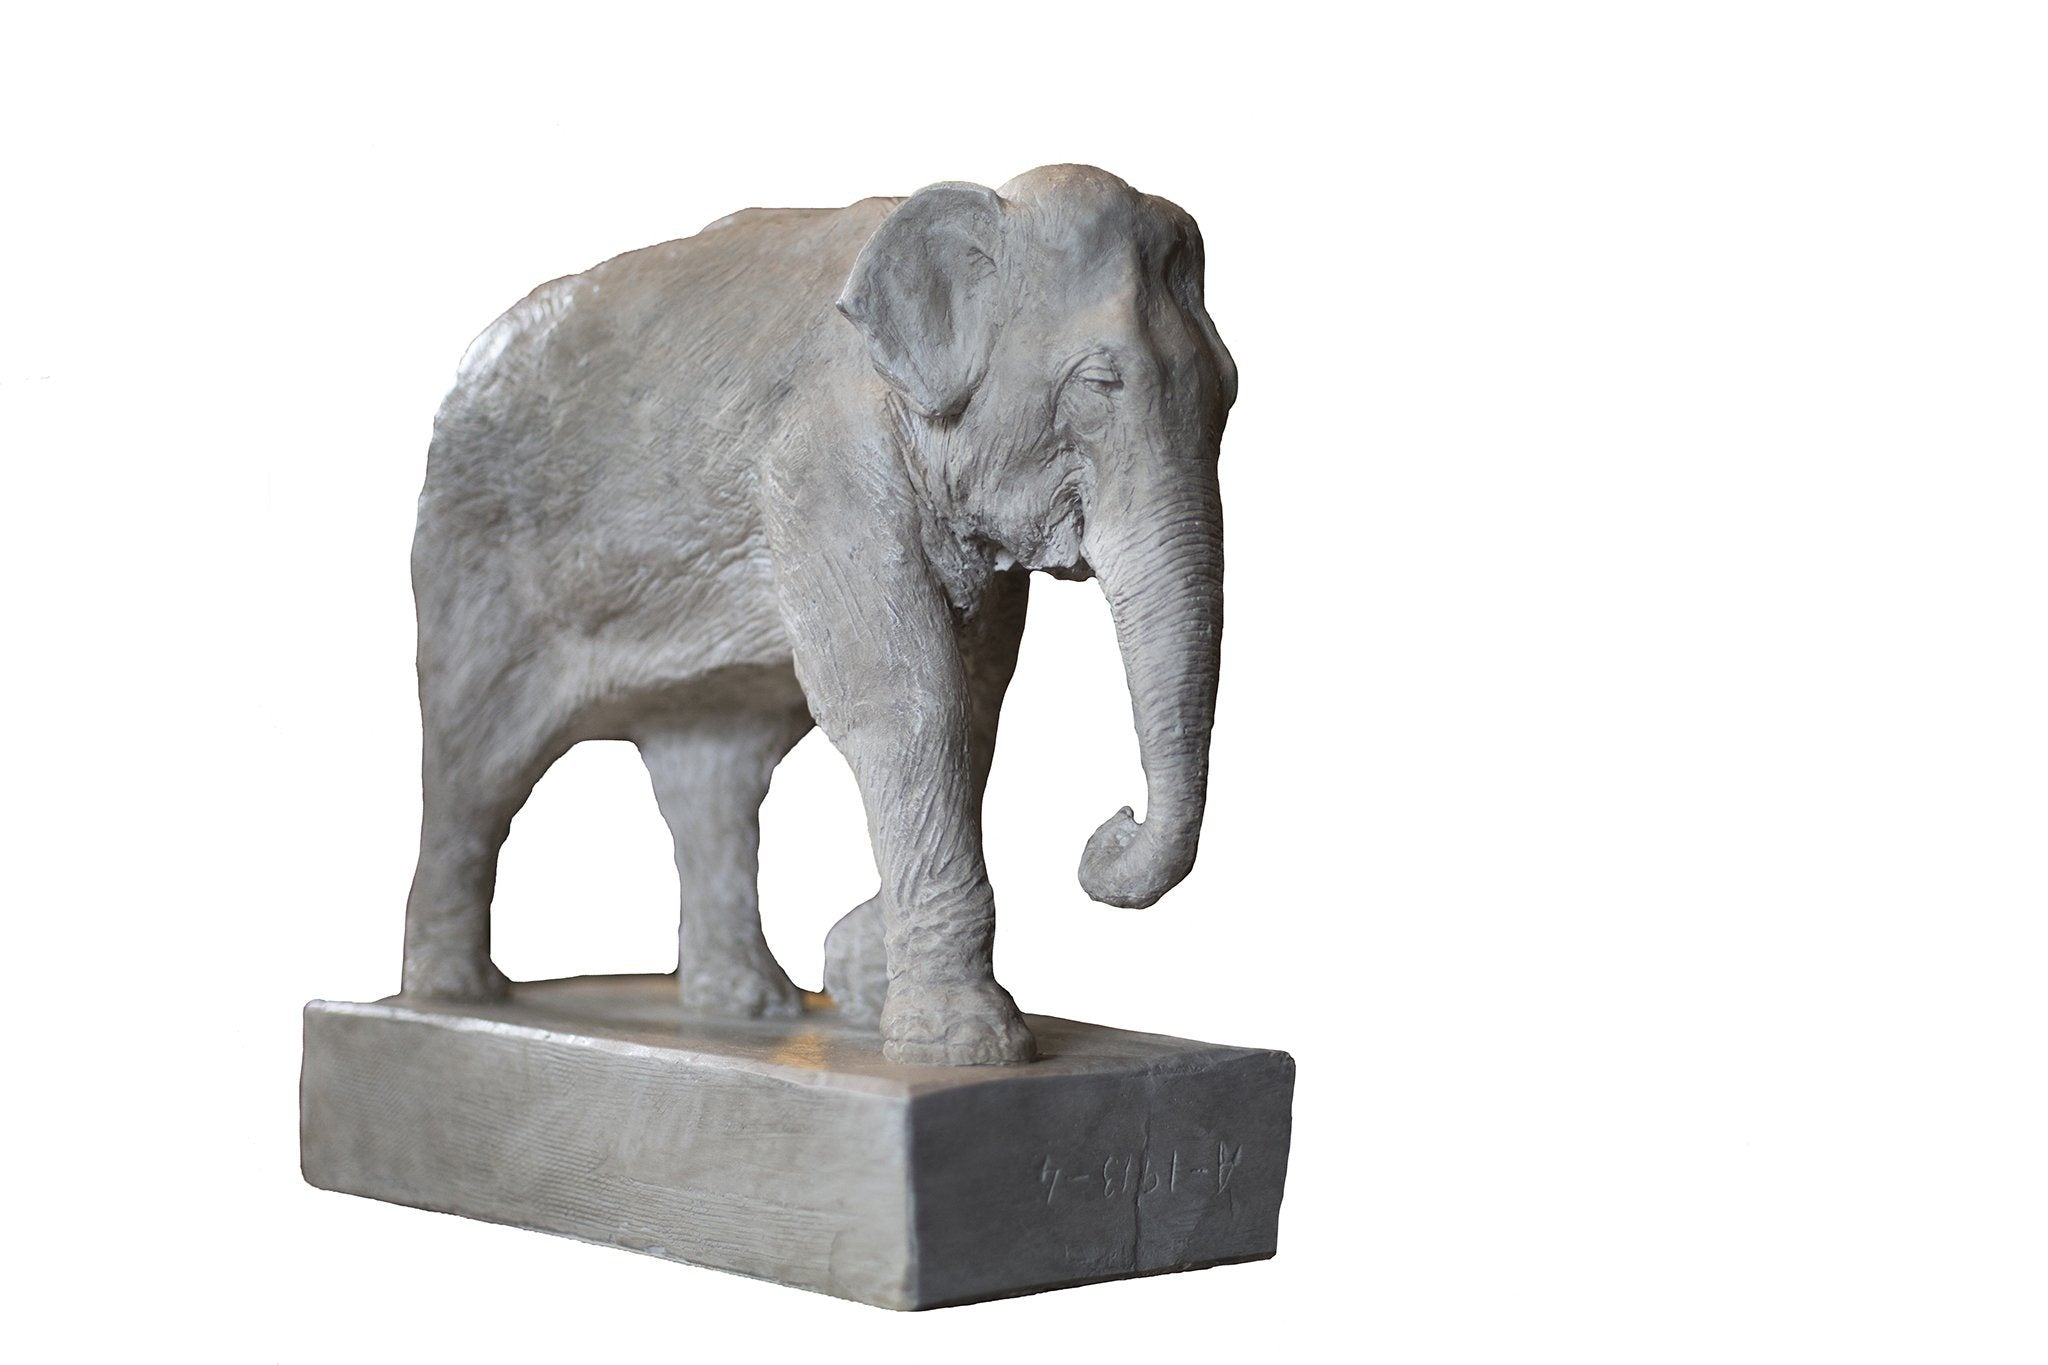 Plaster Elephant - A Modern Grand Tour